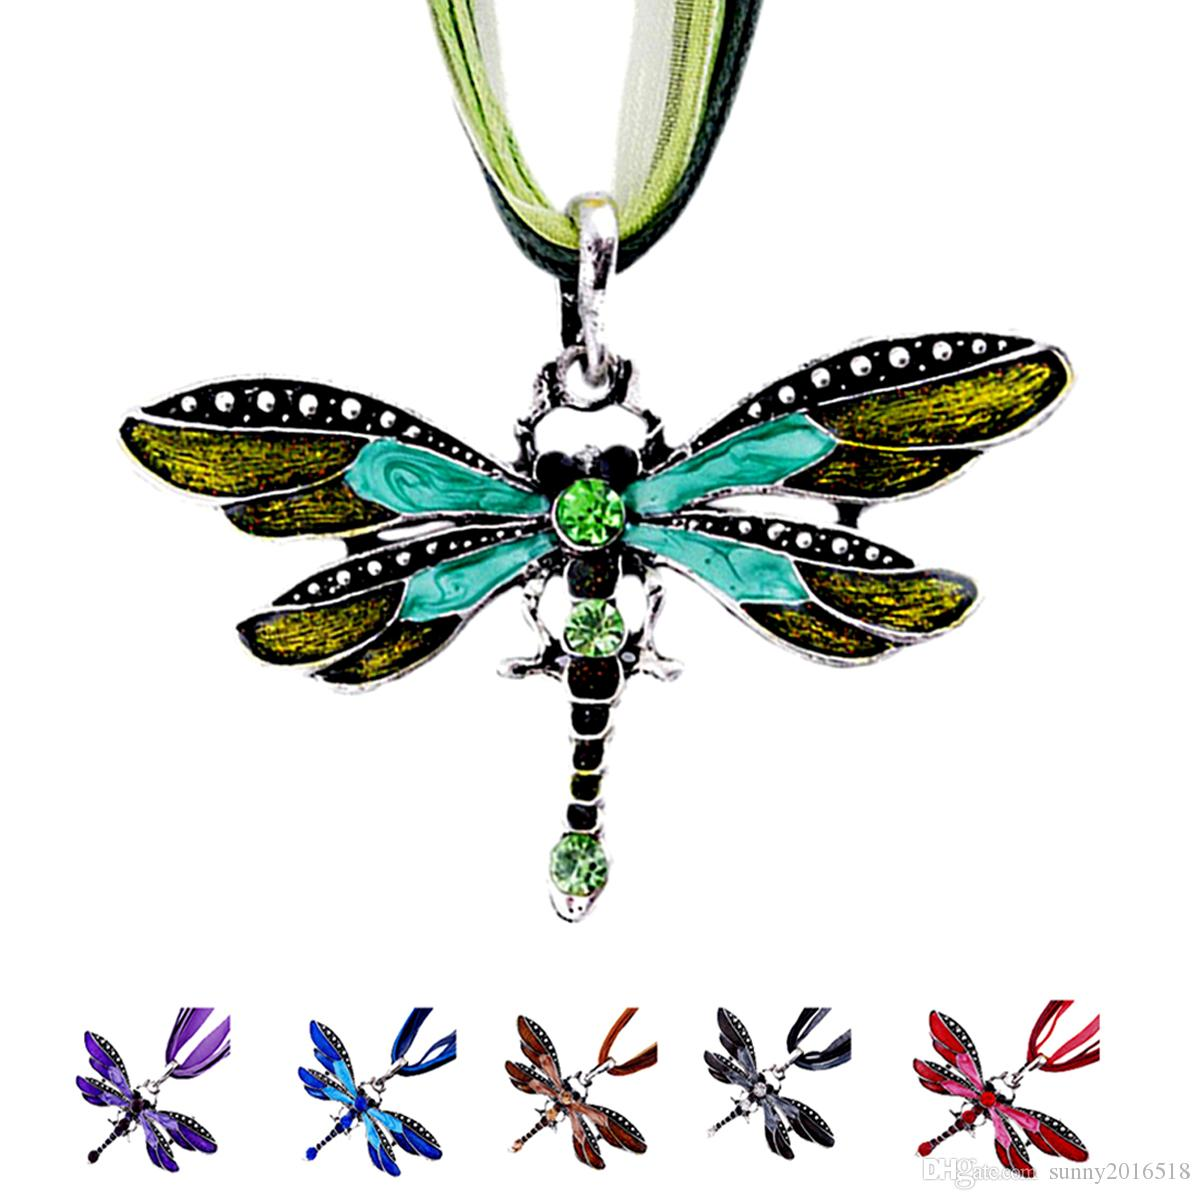 Vintage Enamel Dragonfly Pendant Necklace for Women Choker Necklaces With Rhinestone Wax Rope Chain Collar Fashion Jewelry